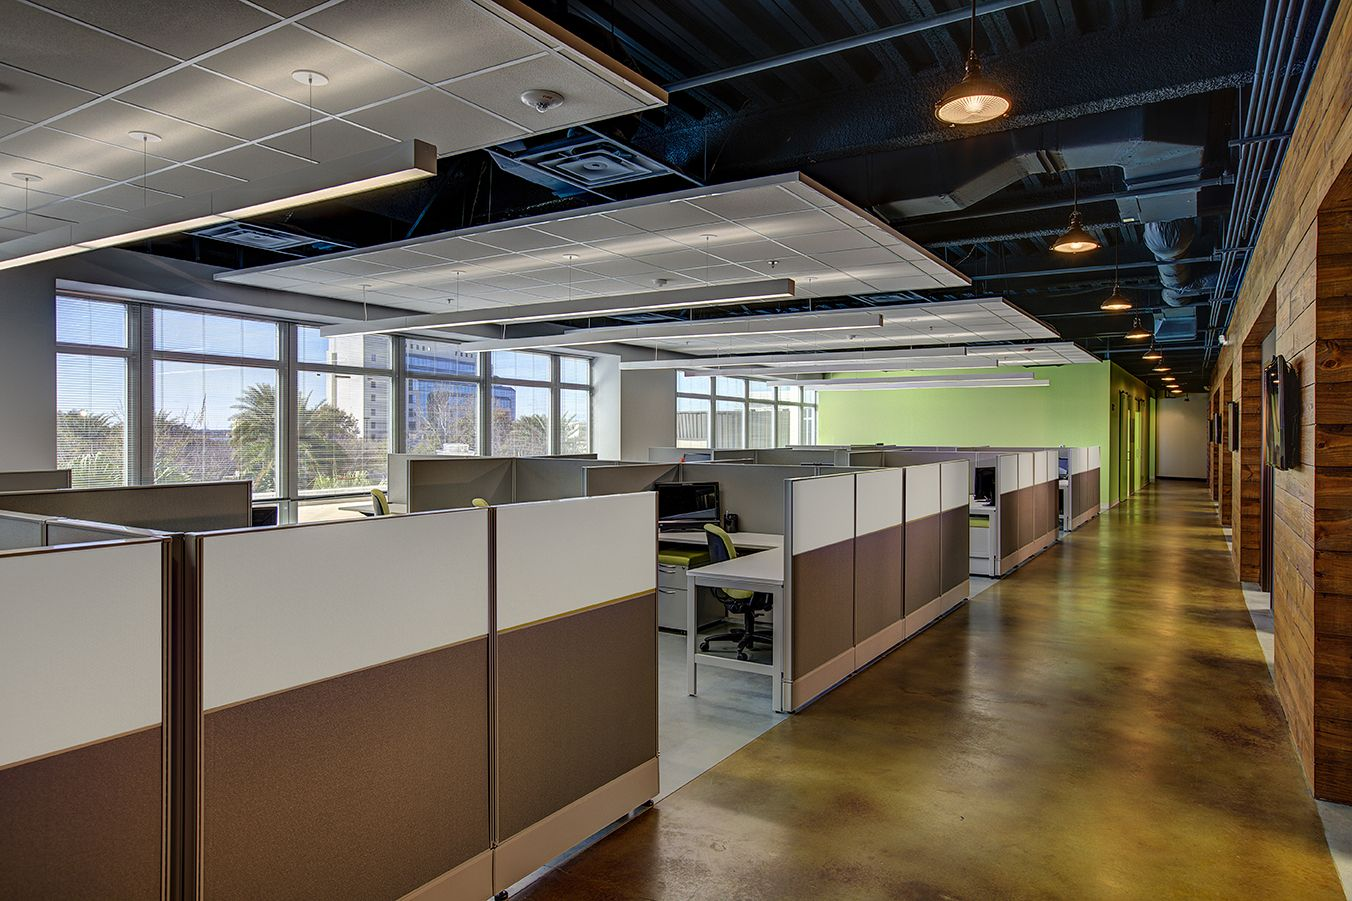 Open office ceiling design google search opps building for Office ceiling design